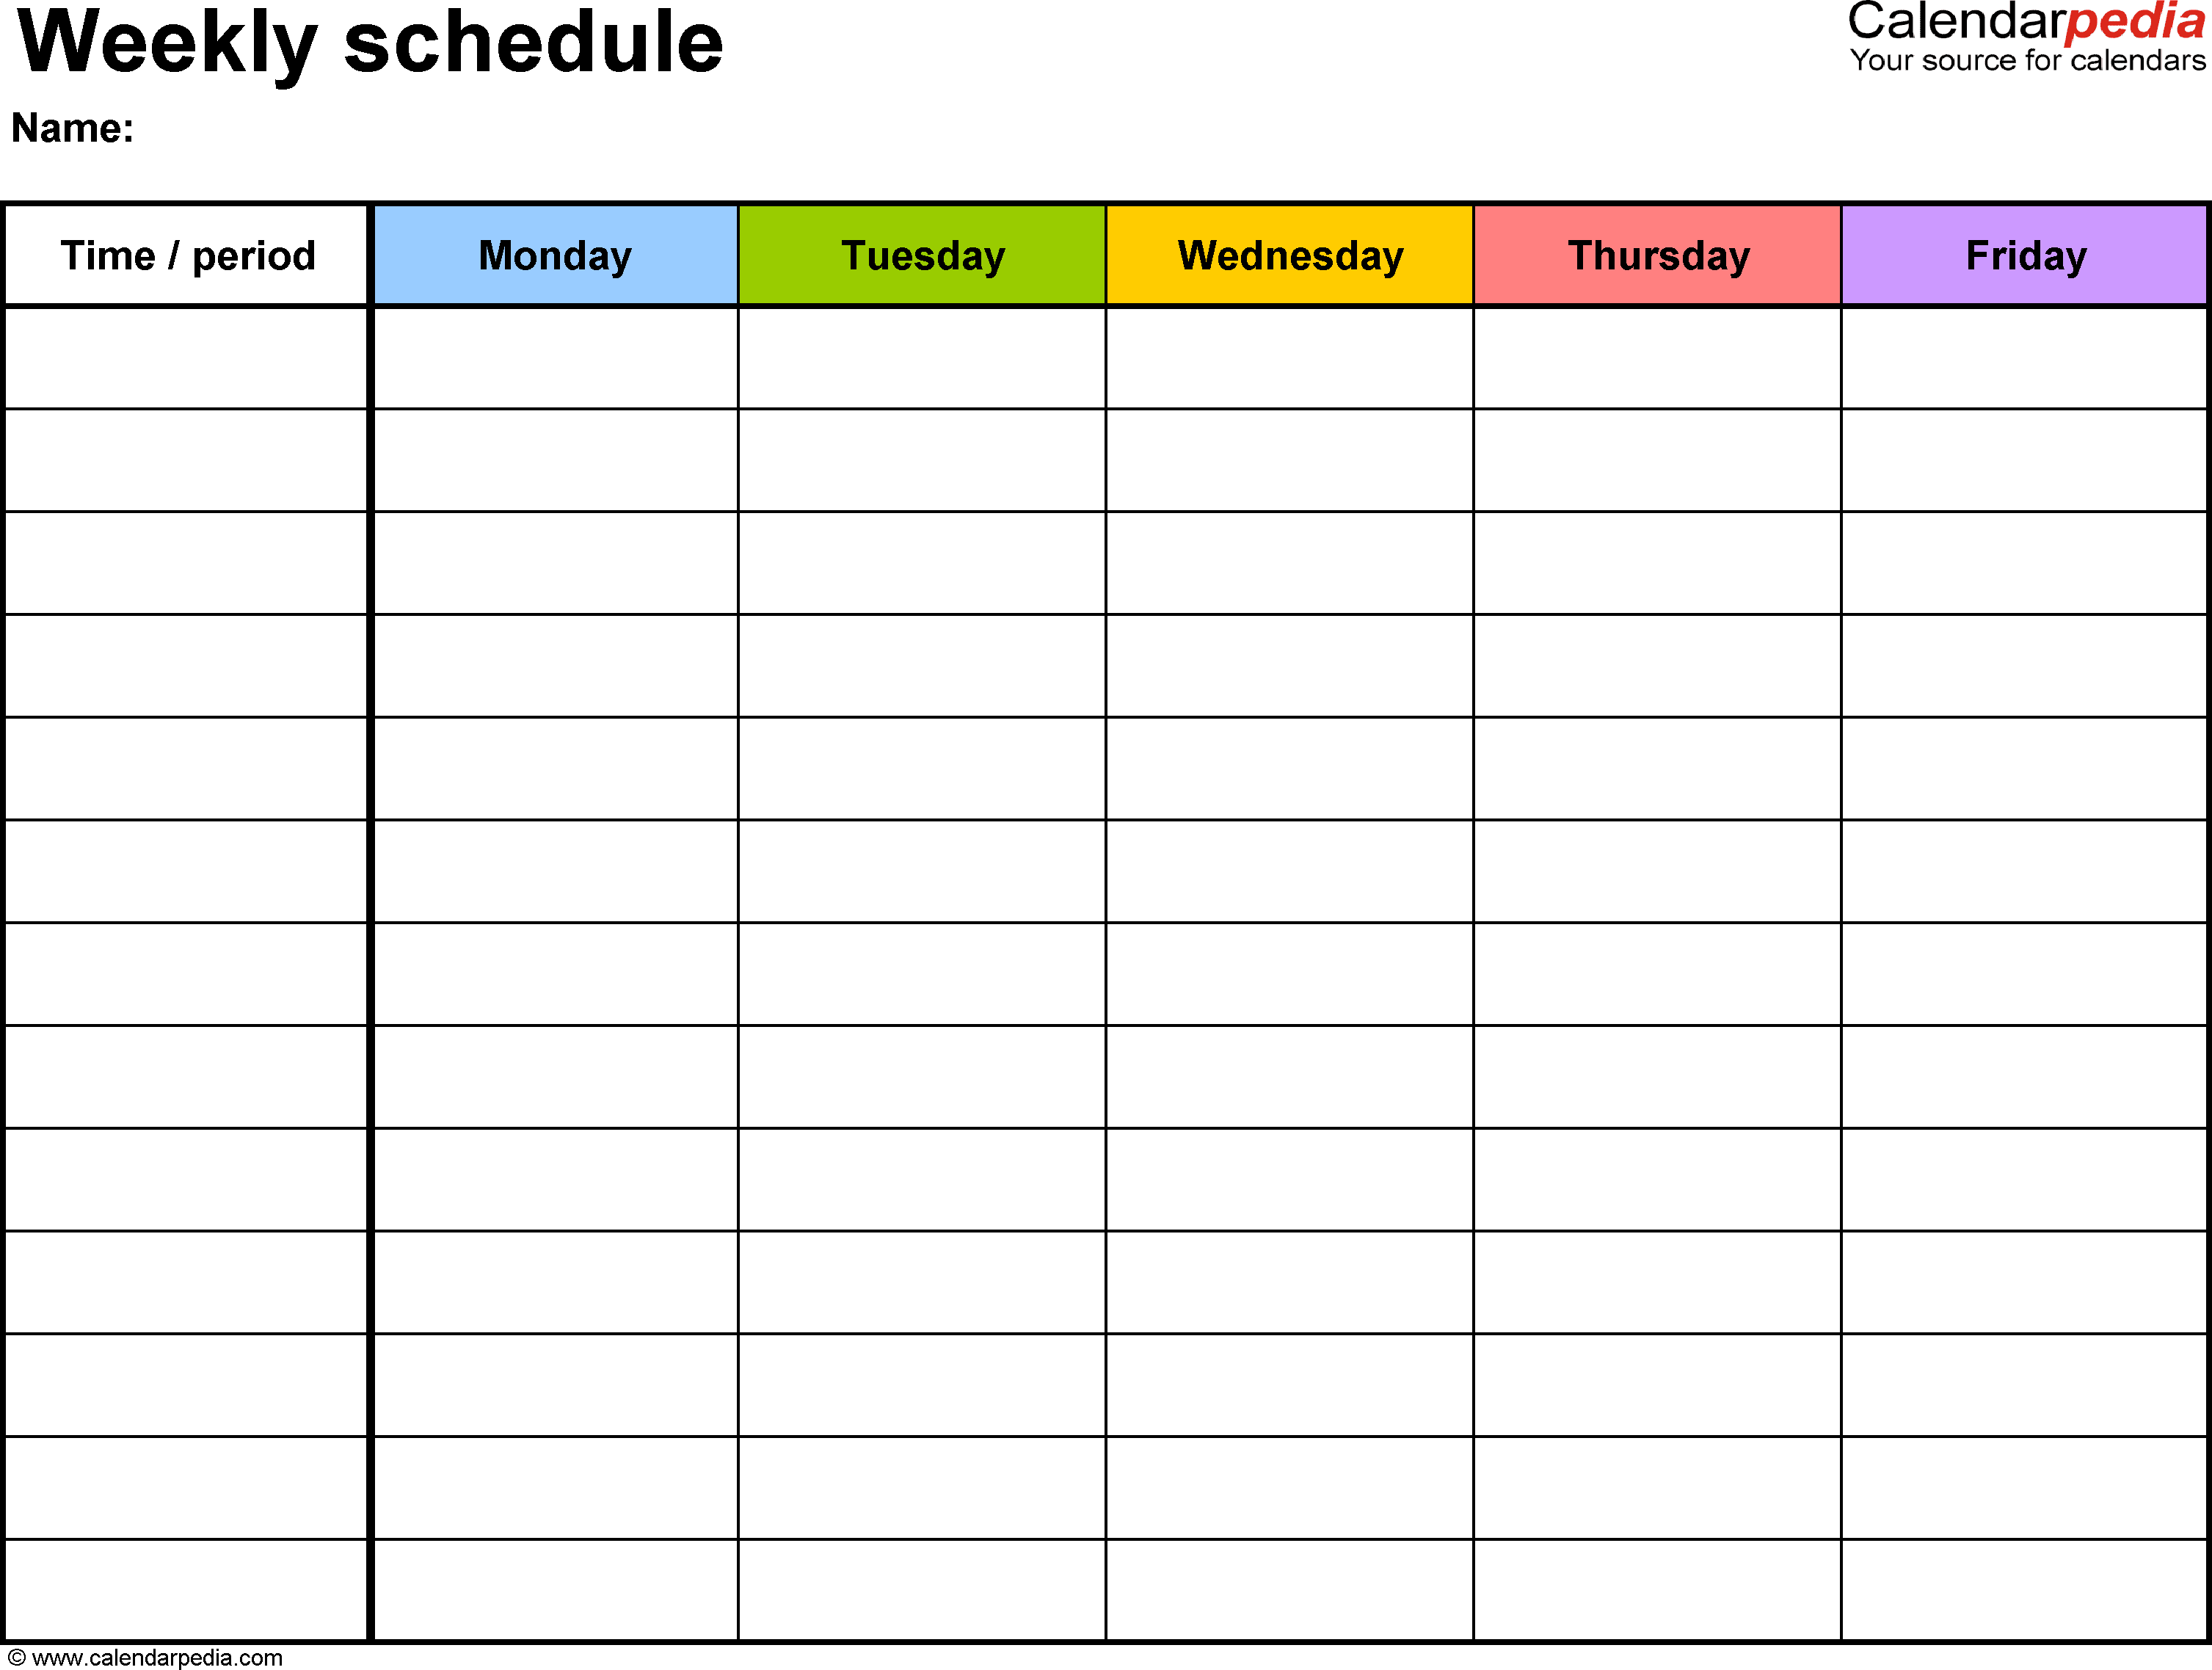 I Used Weekly Schedule Template In Color For The Boys Word Version Landscape 1 Page Monday To Friday Day Week